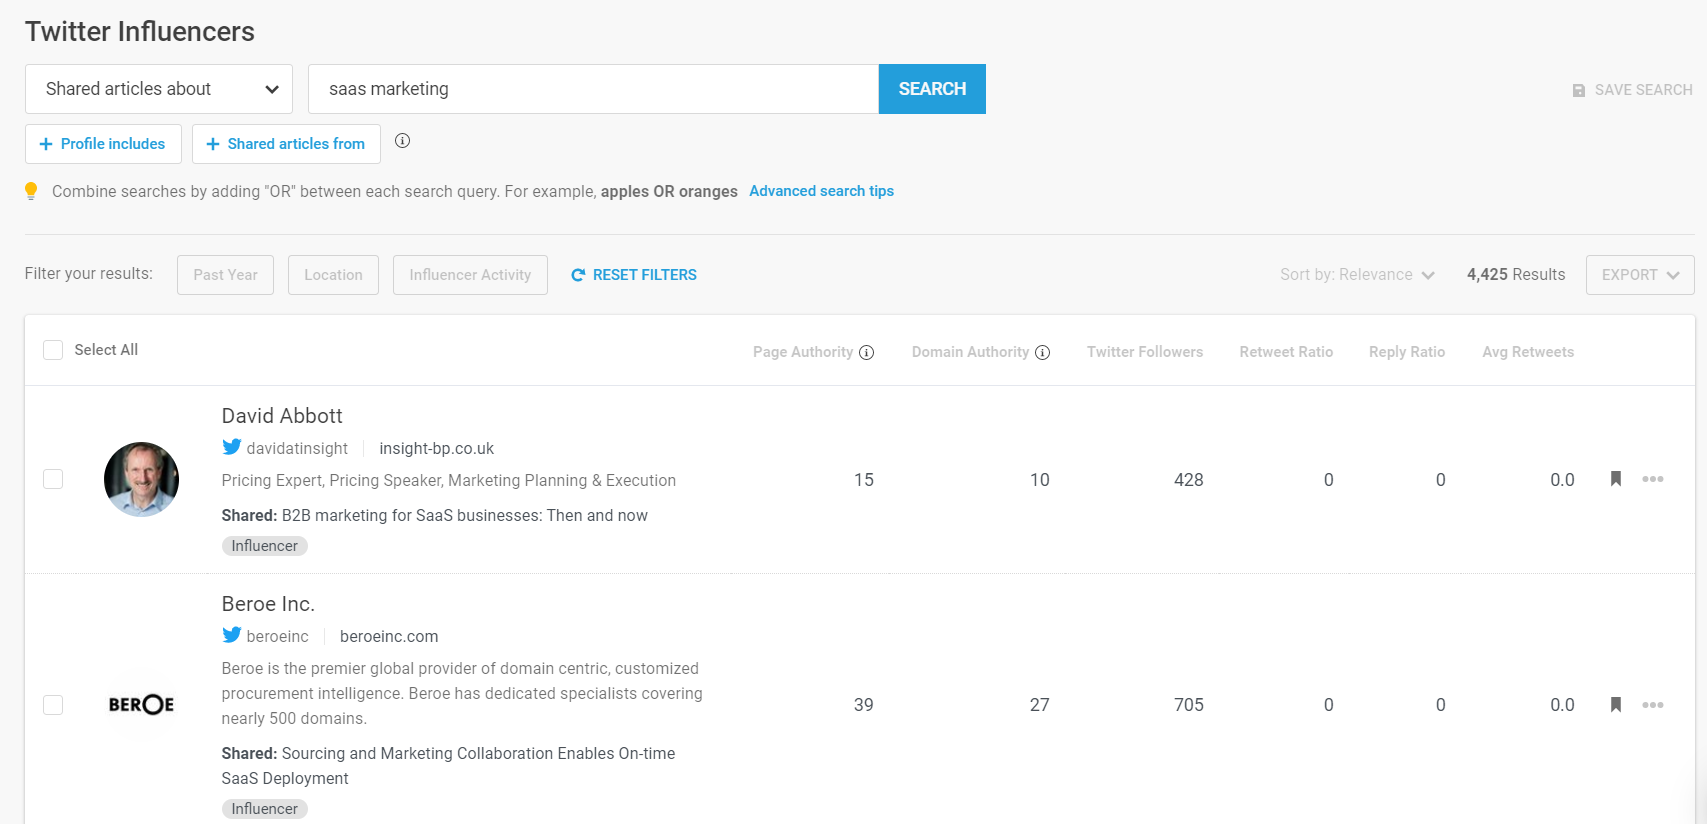 buzzsumo results for saas marketing